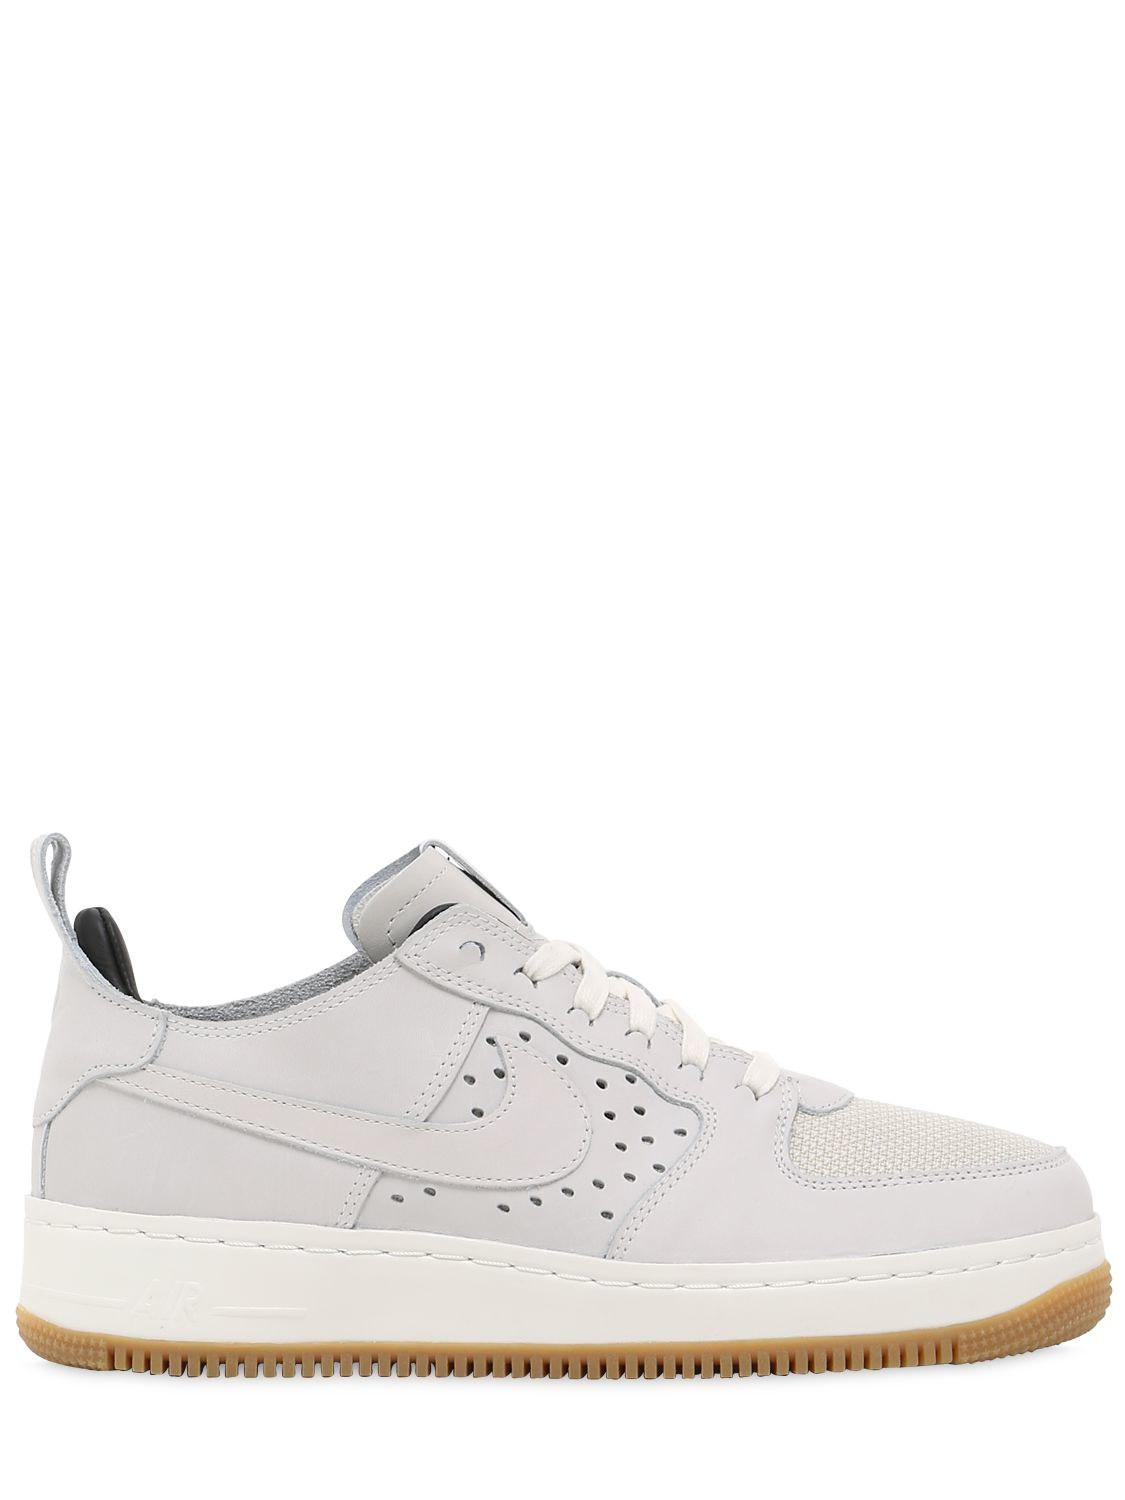 Nike. Men's White Air Force 1 Cmft Tc Sp Sneakers